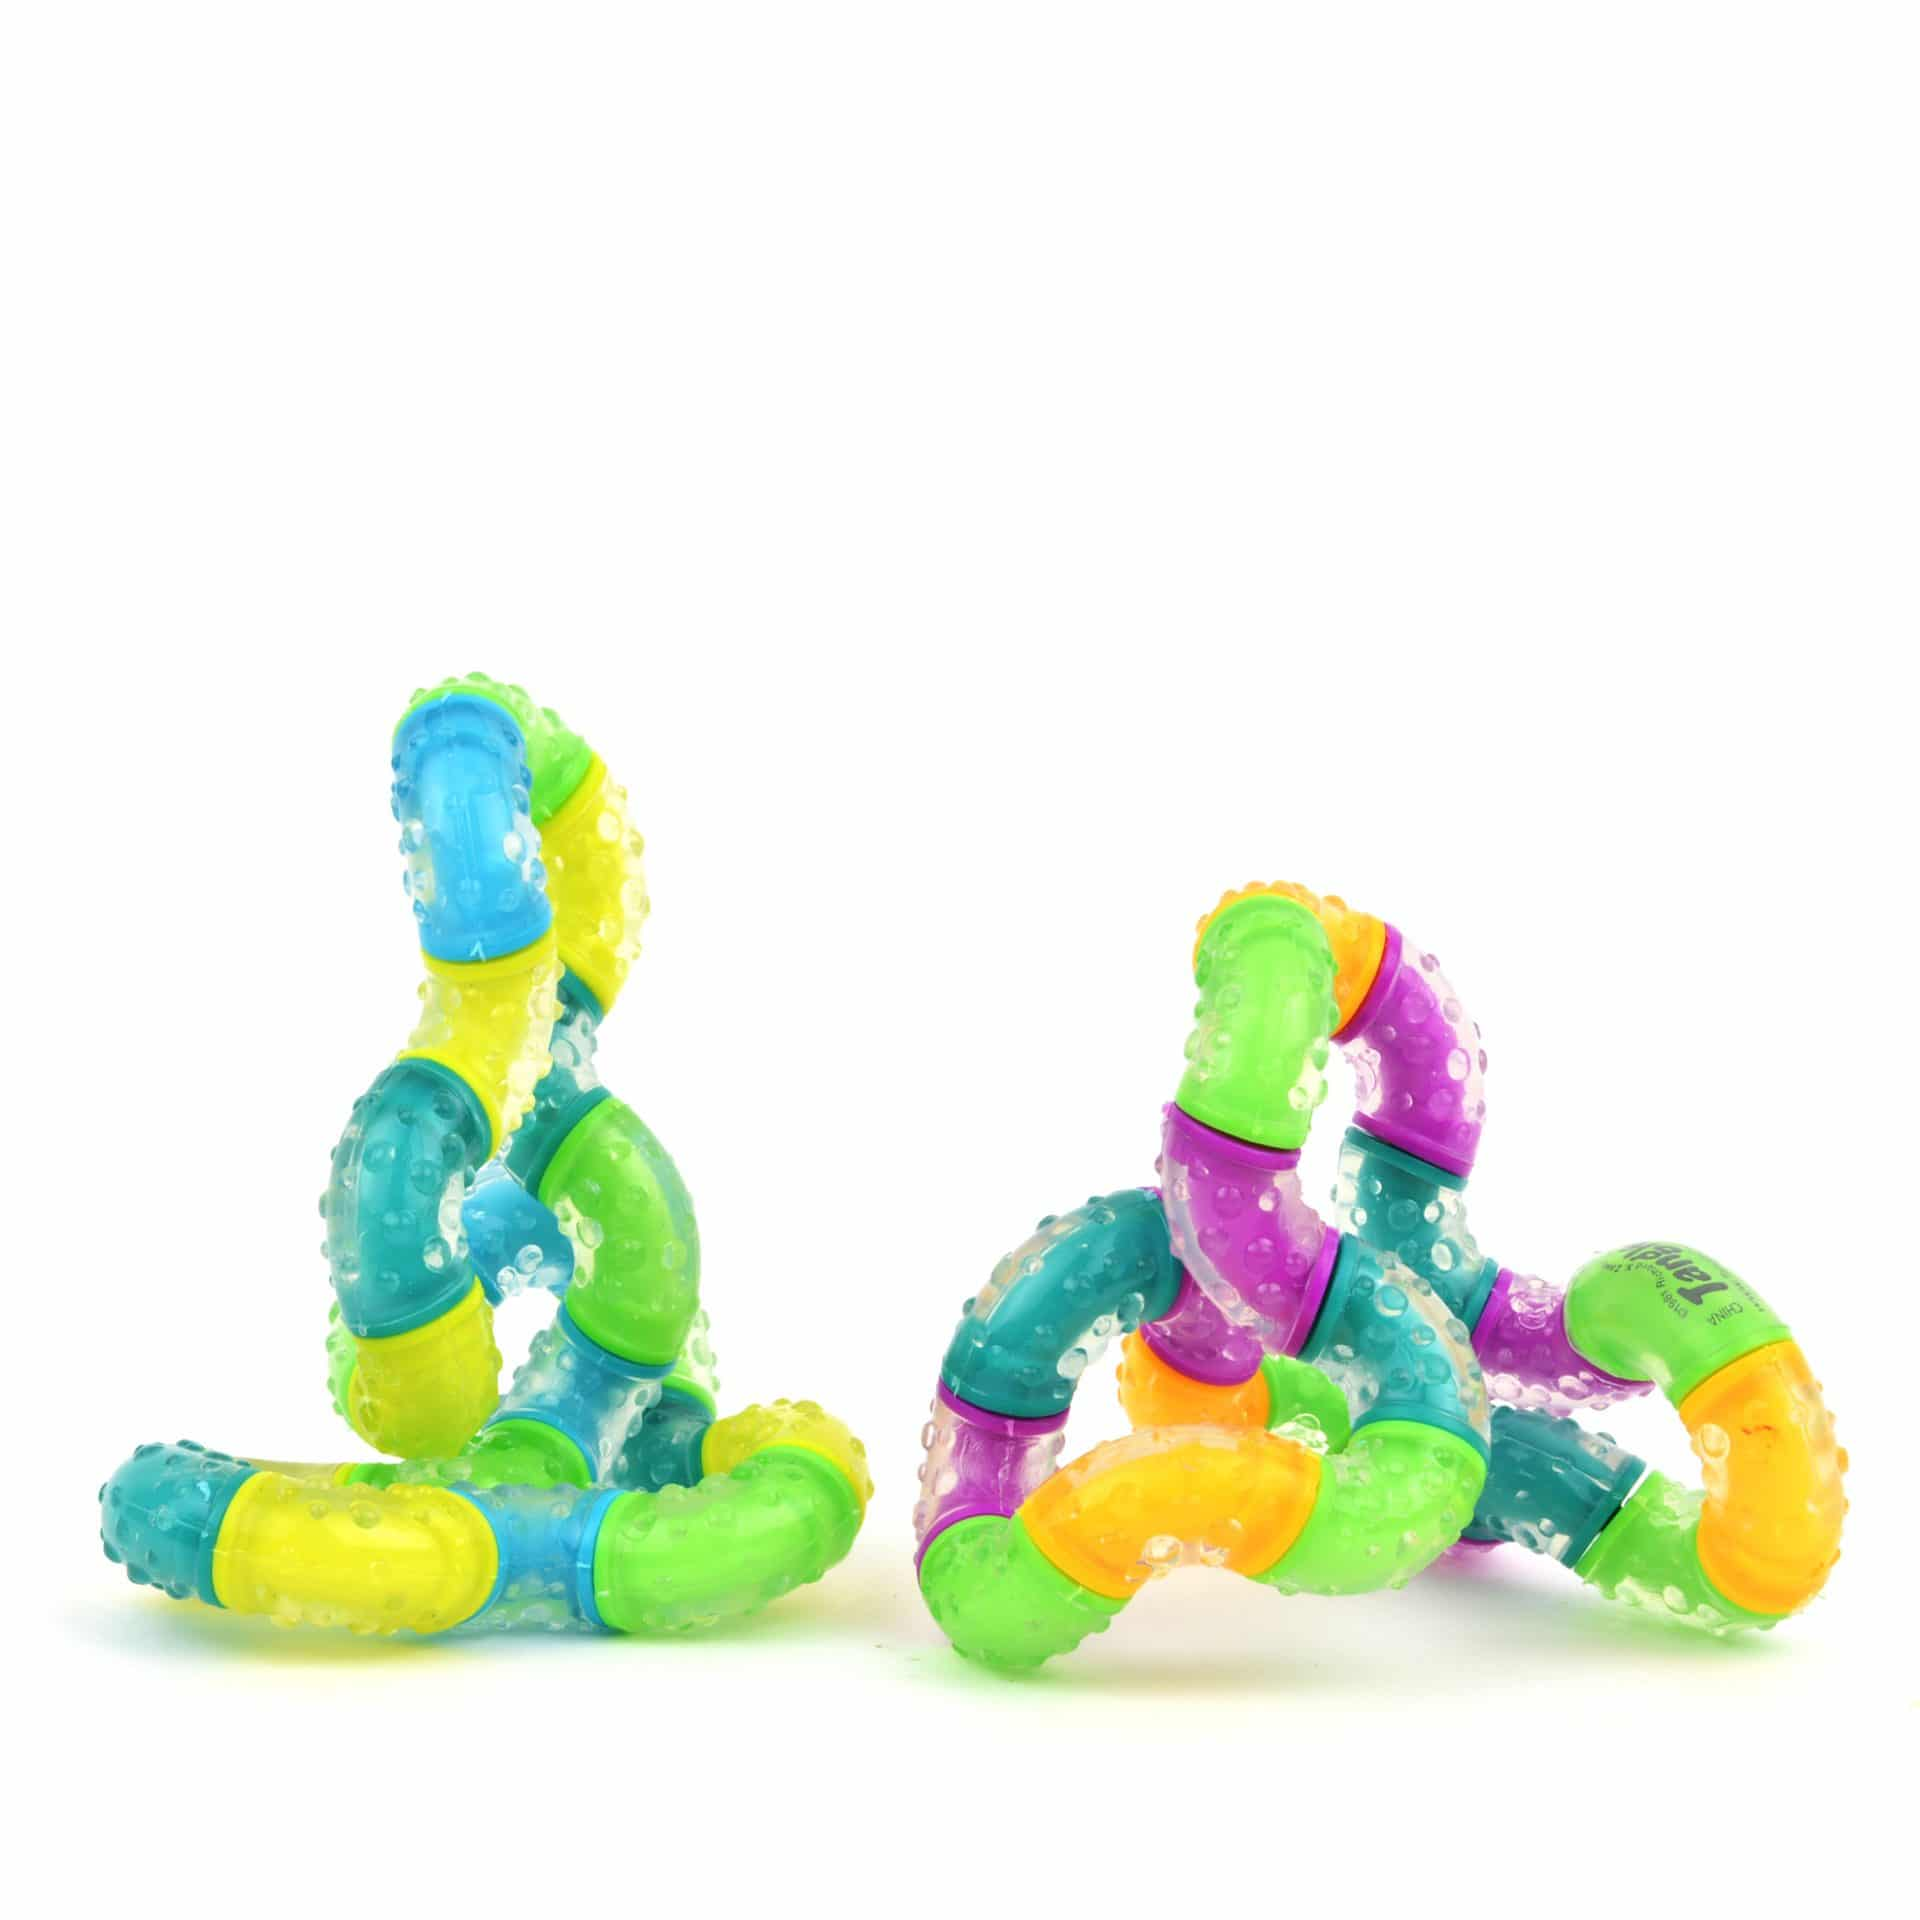 Segmented Tangle toy bends and twists